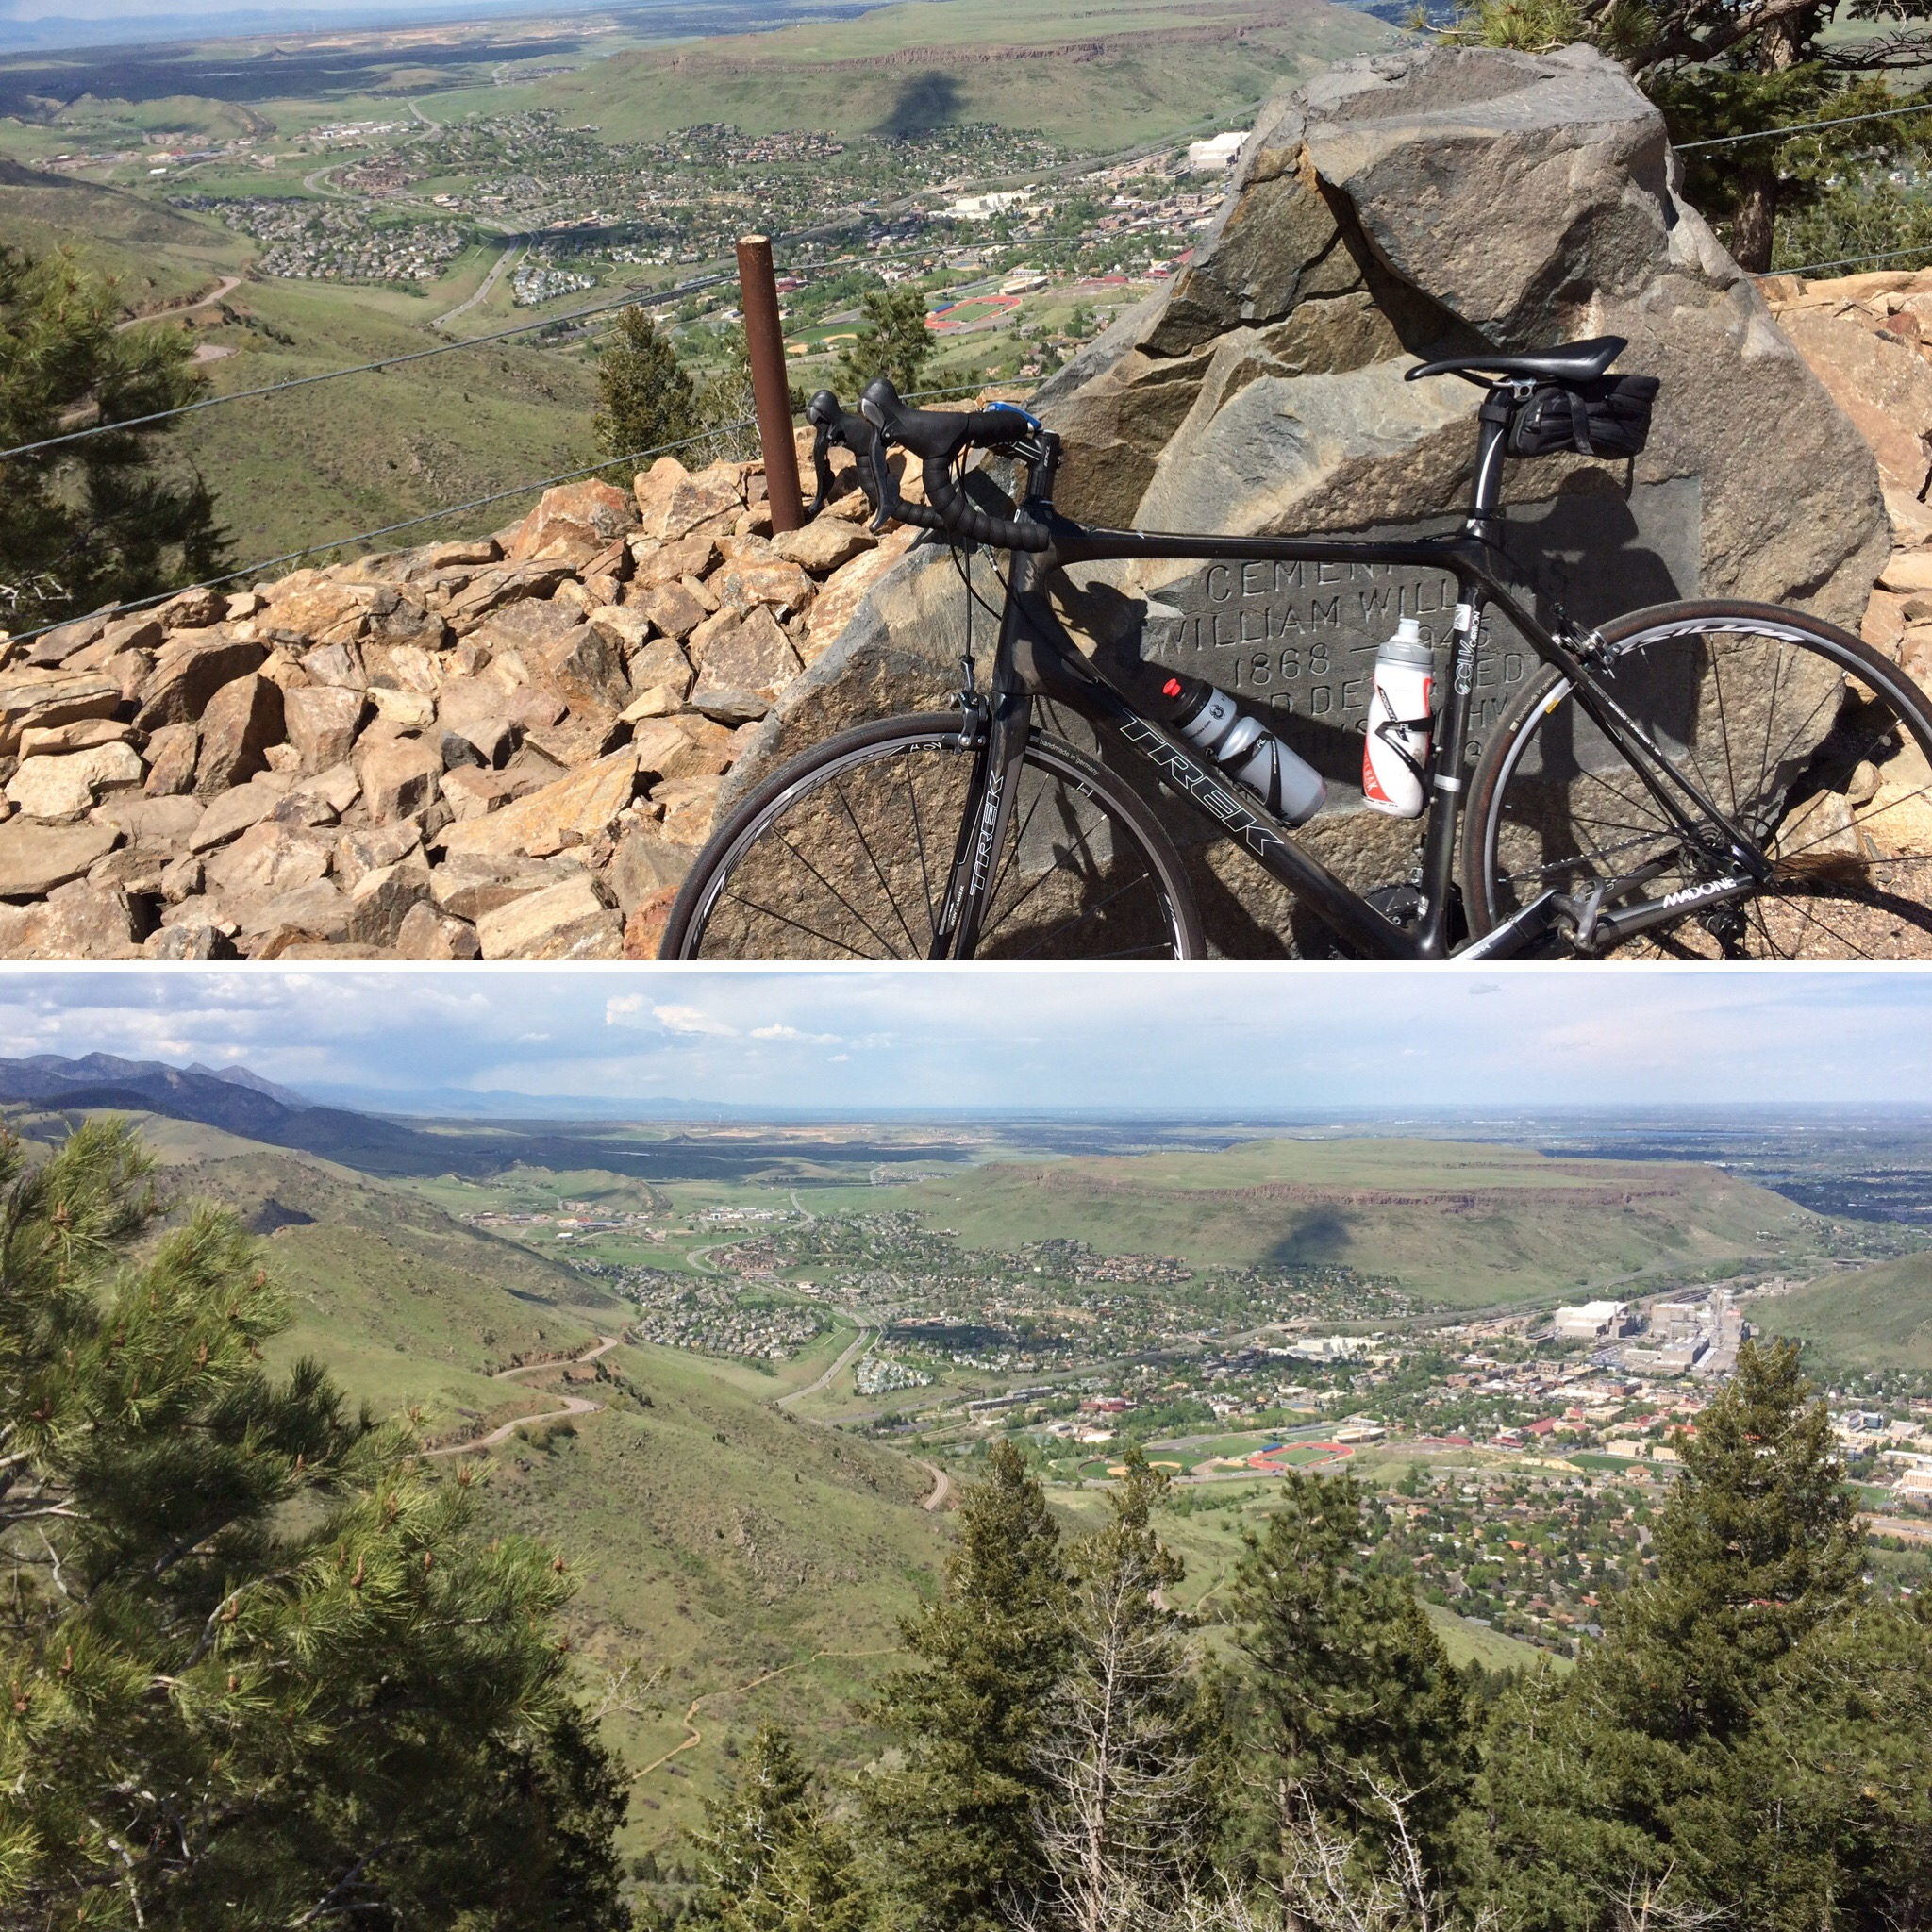 The top of Lookout Mountain provides a great view of Denver. Challenging and fun bike ride up, too.